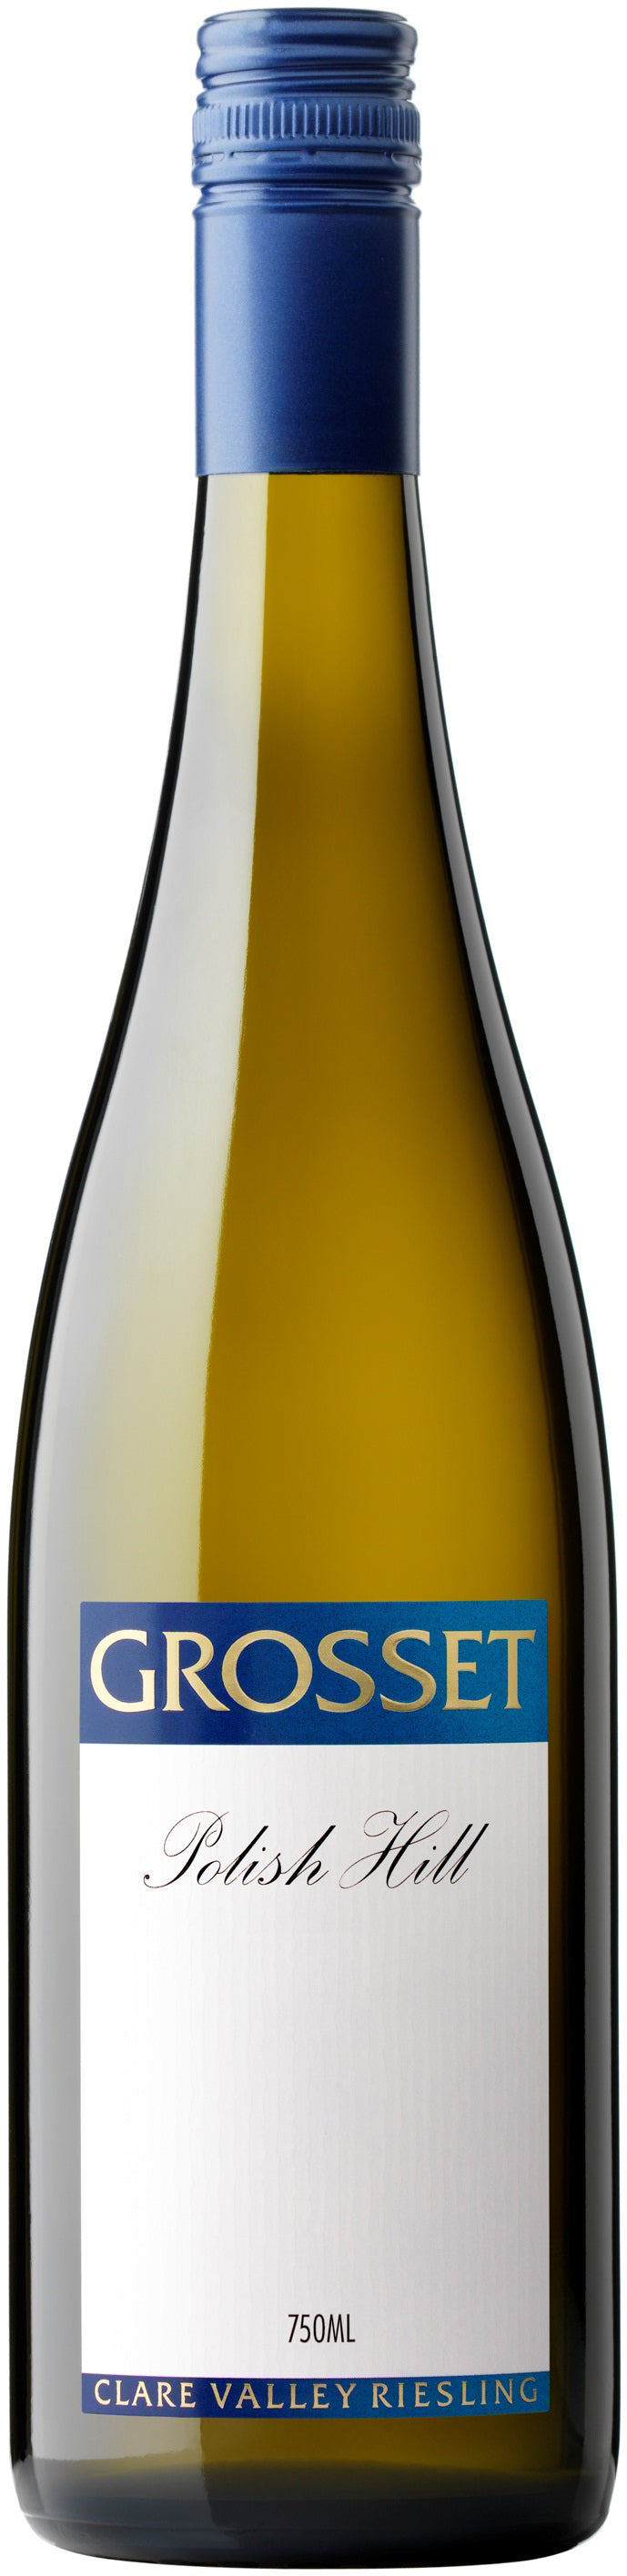 Grosset Polish Hill Clare Valley Riesling 2019 12.5%  6x75cl